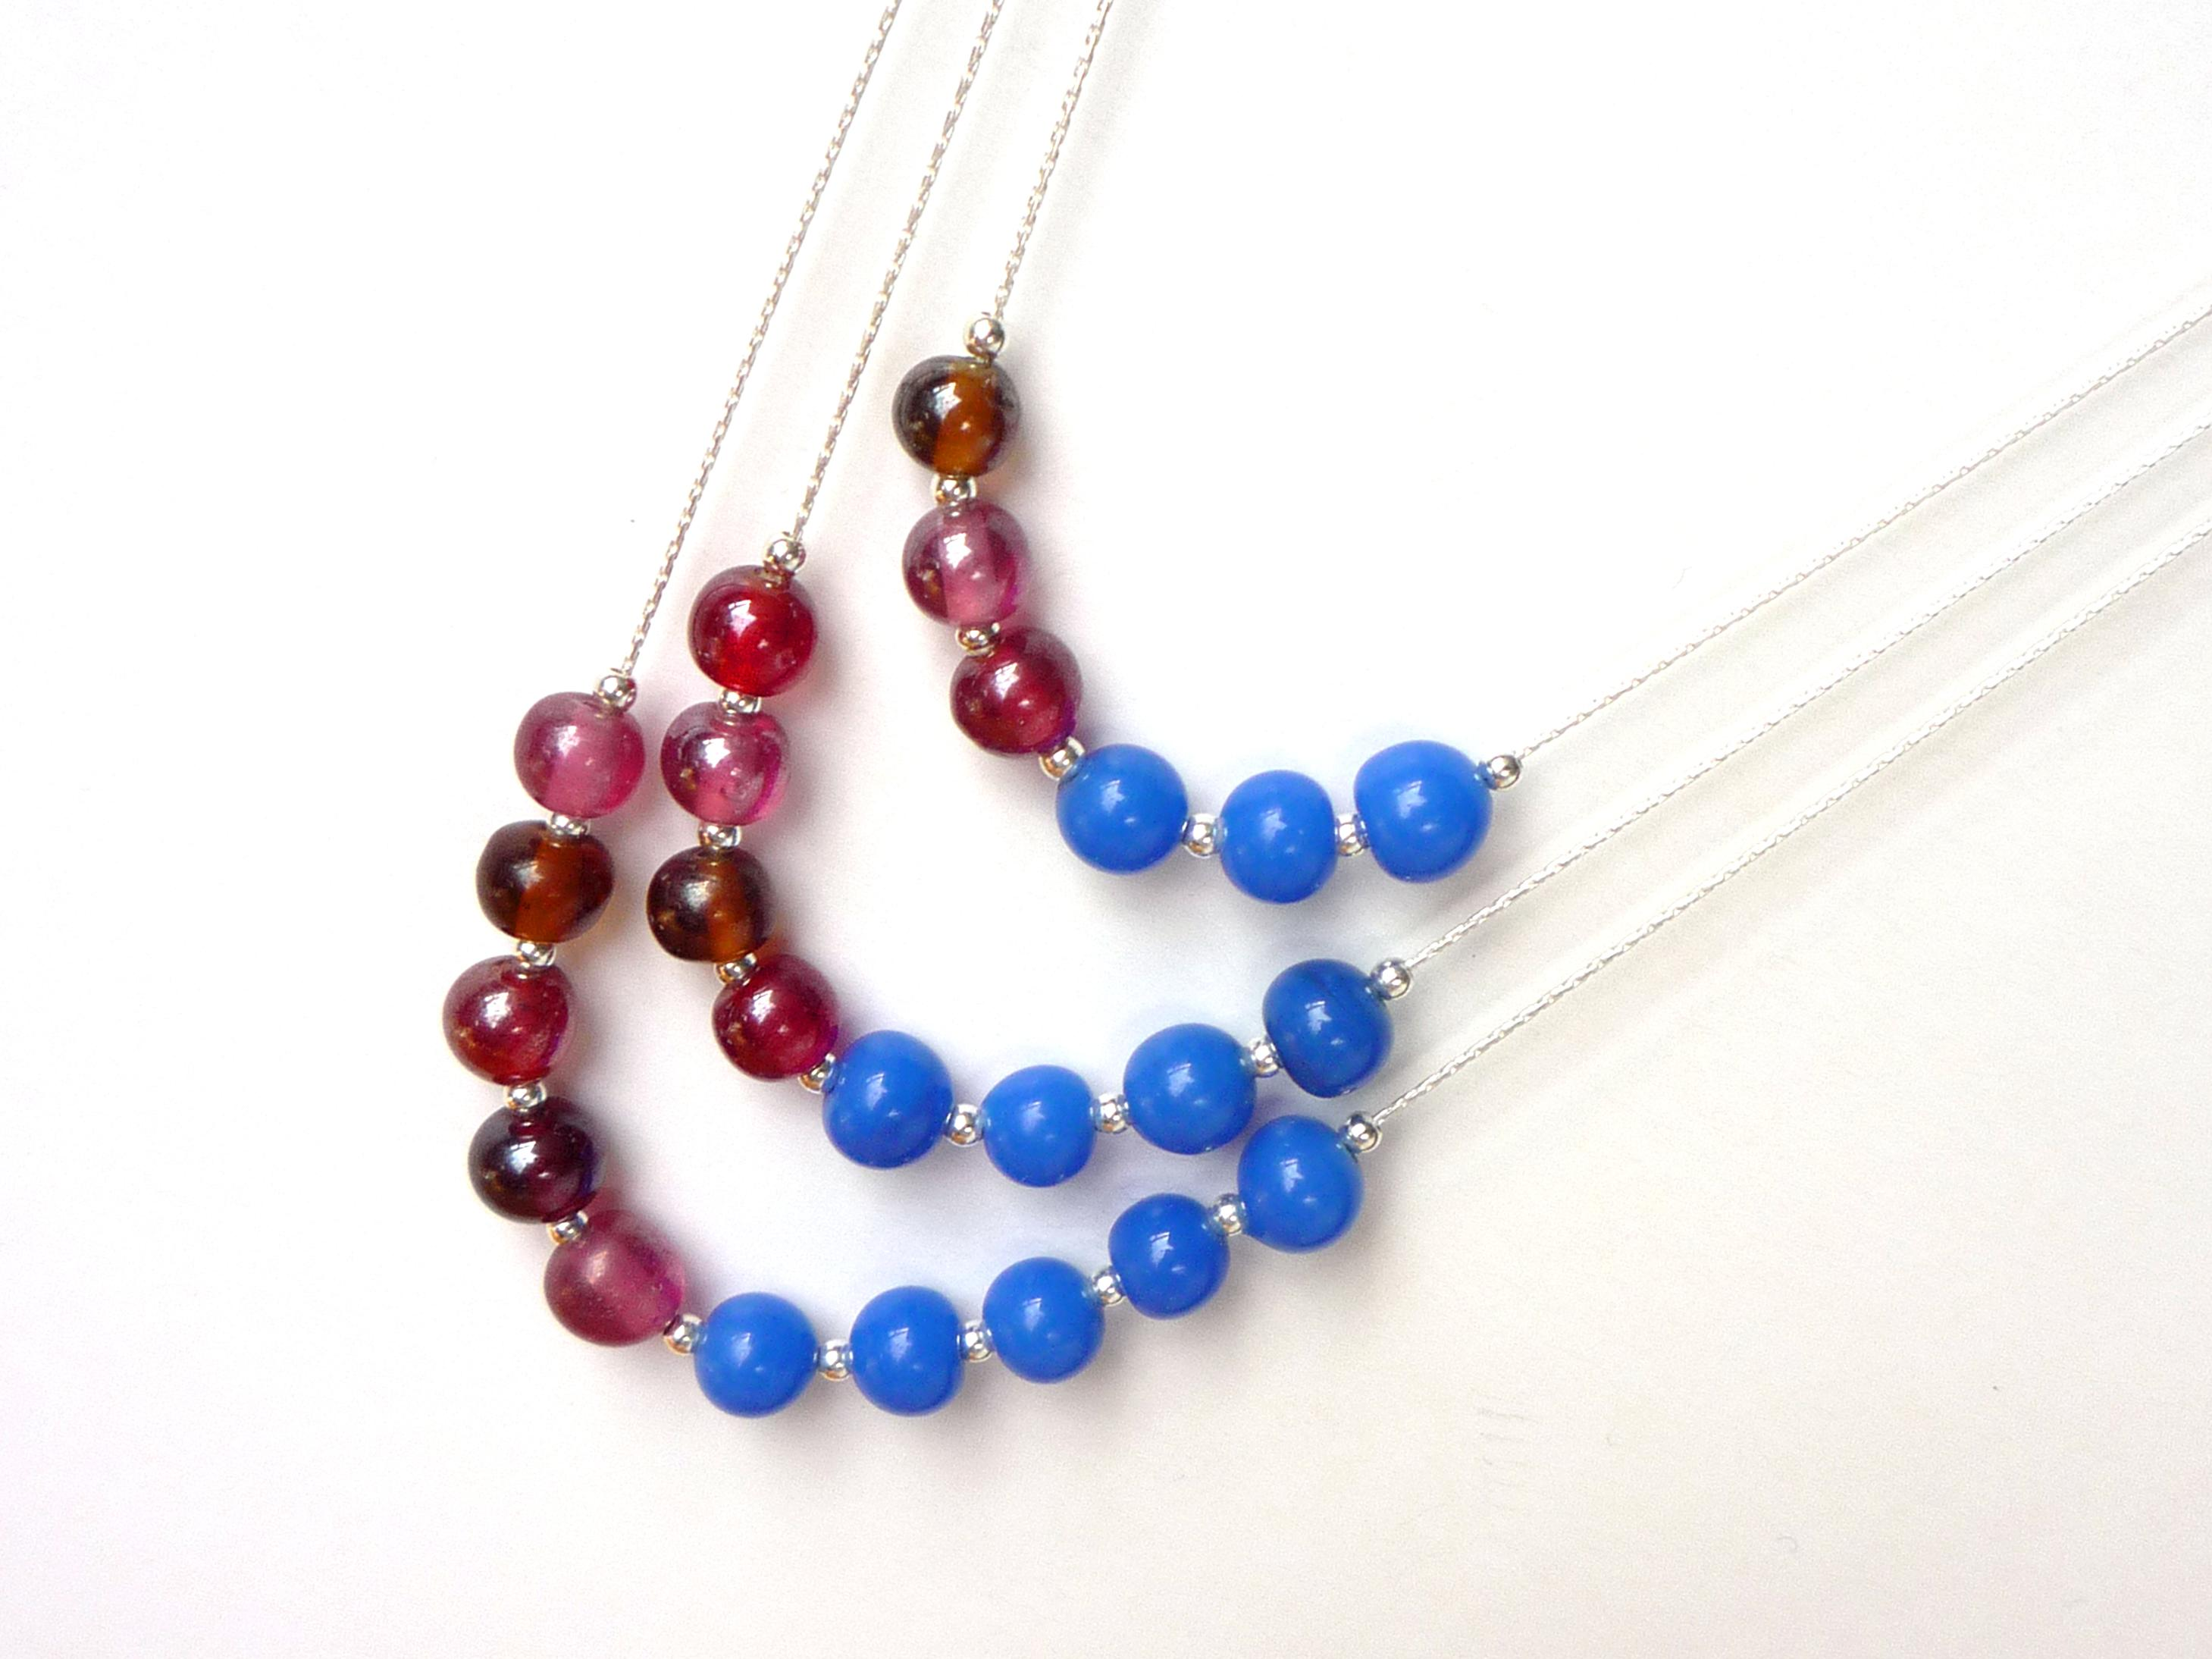 3 layer beaded necklaces the Little Koo blog